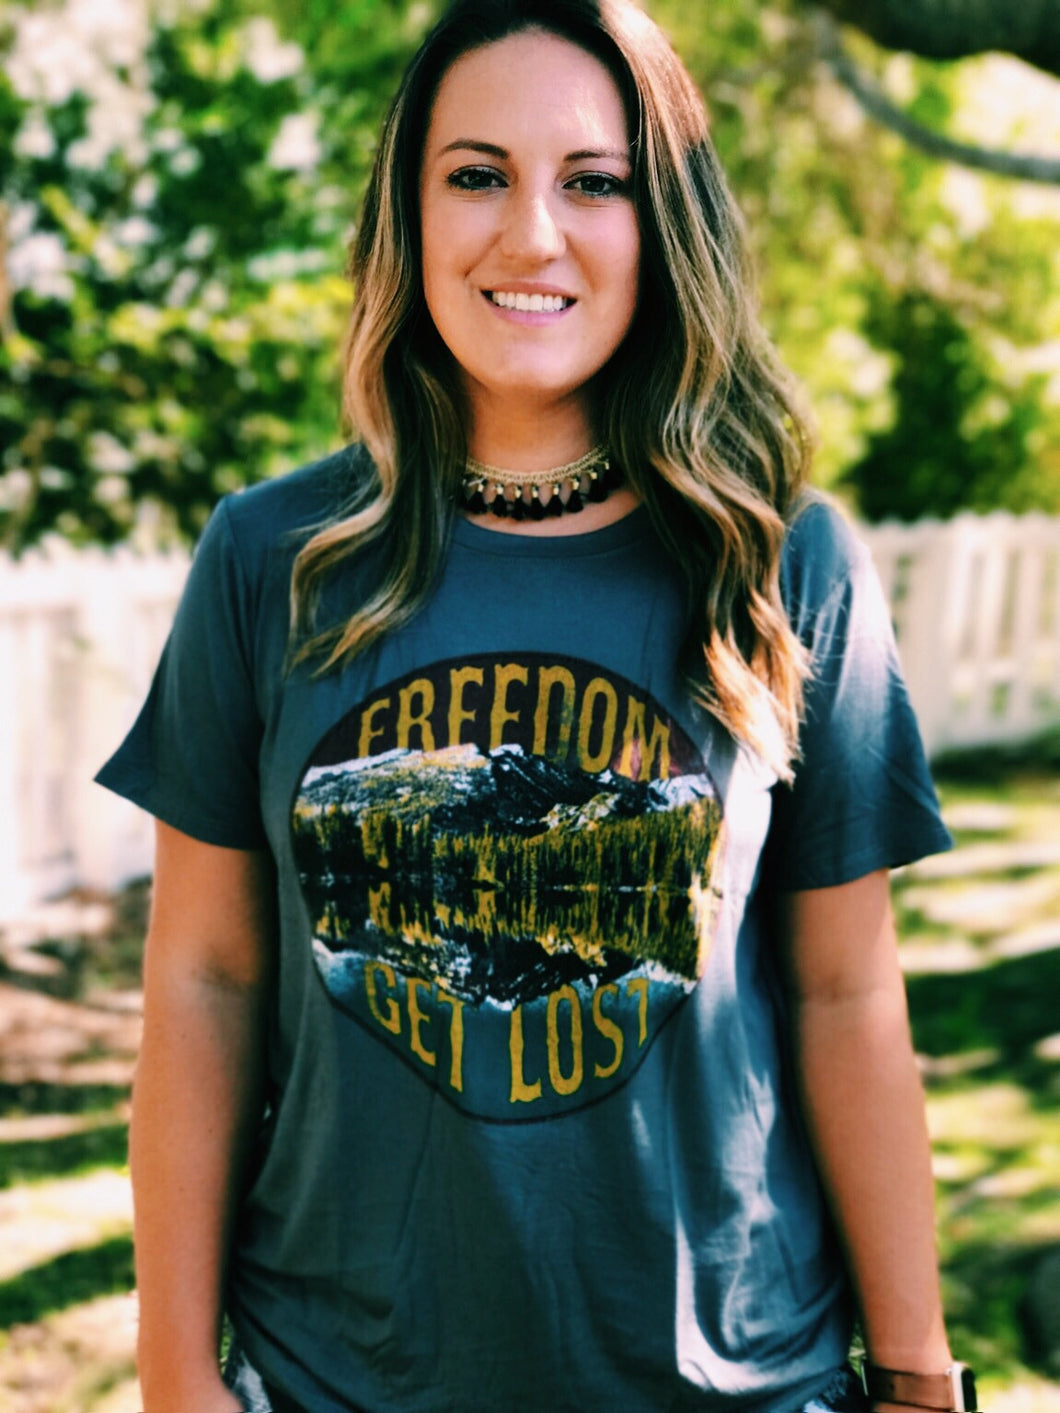 Freedom Get Lost Tee